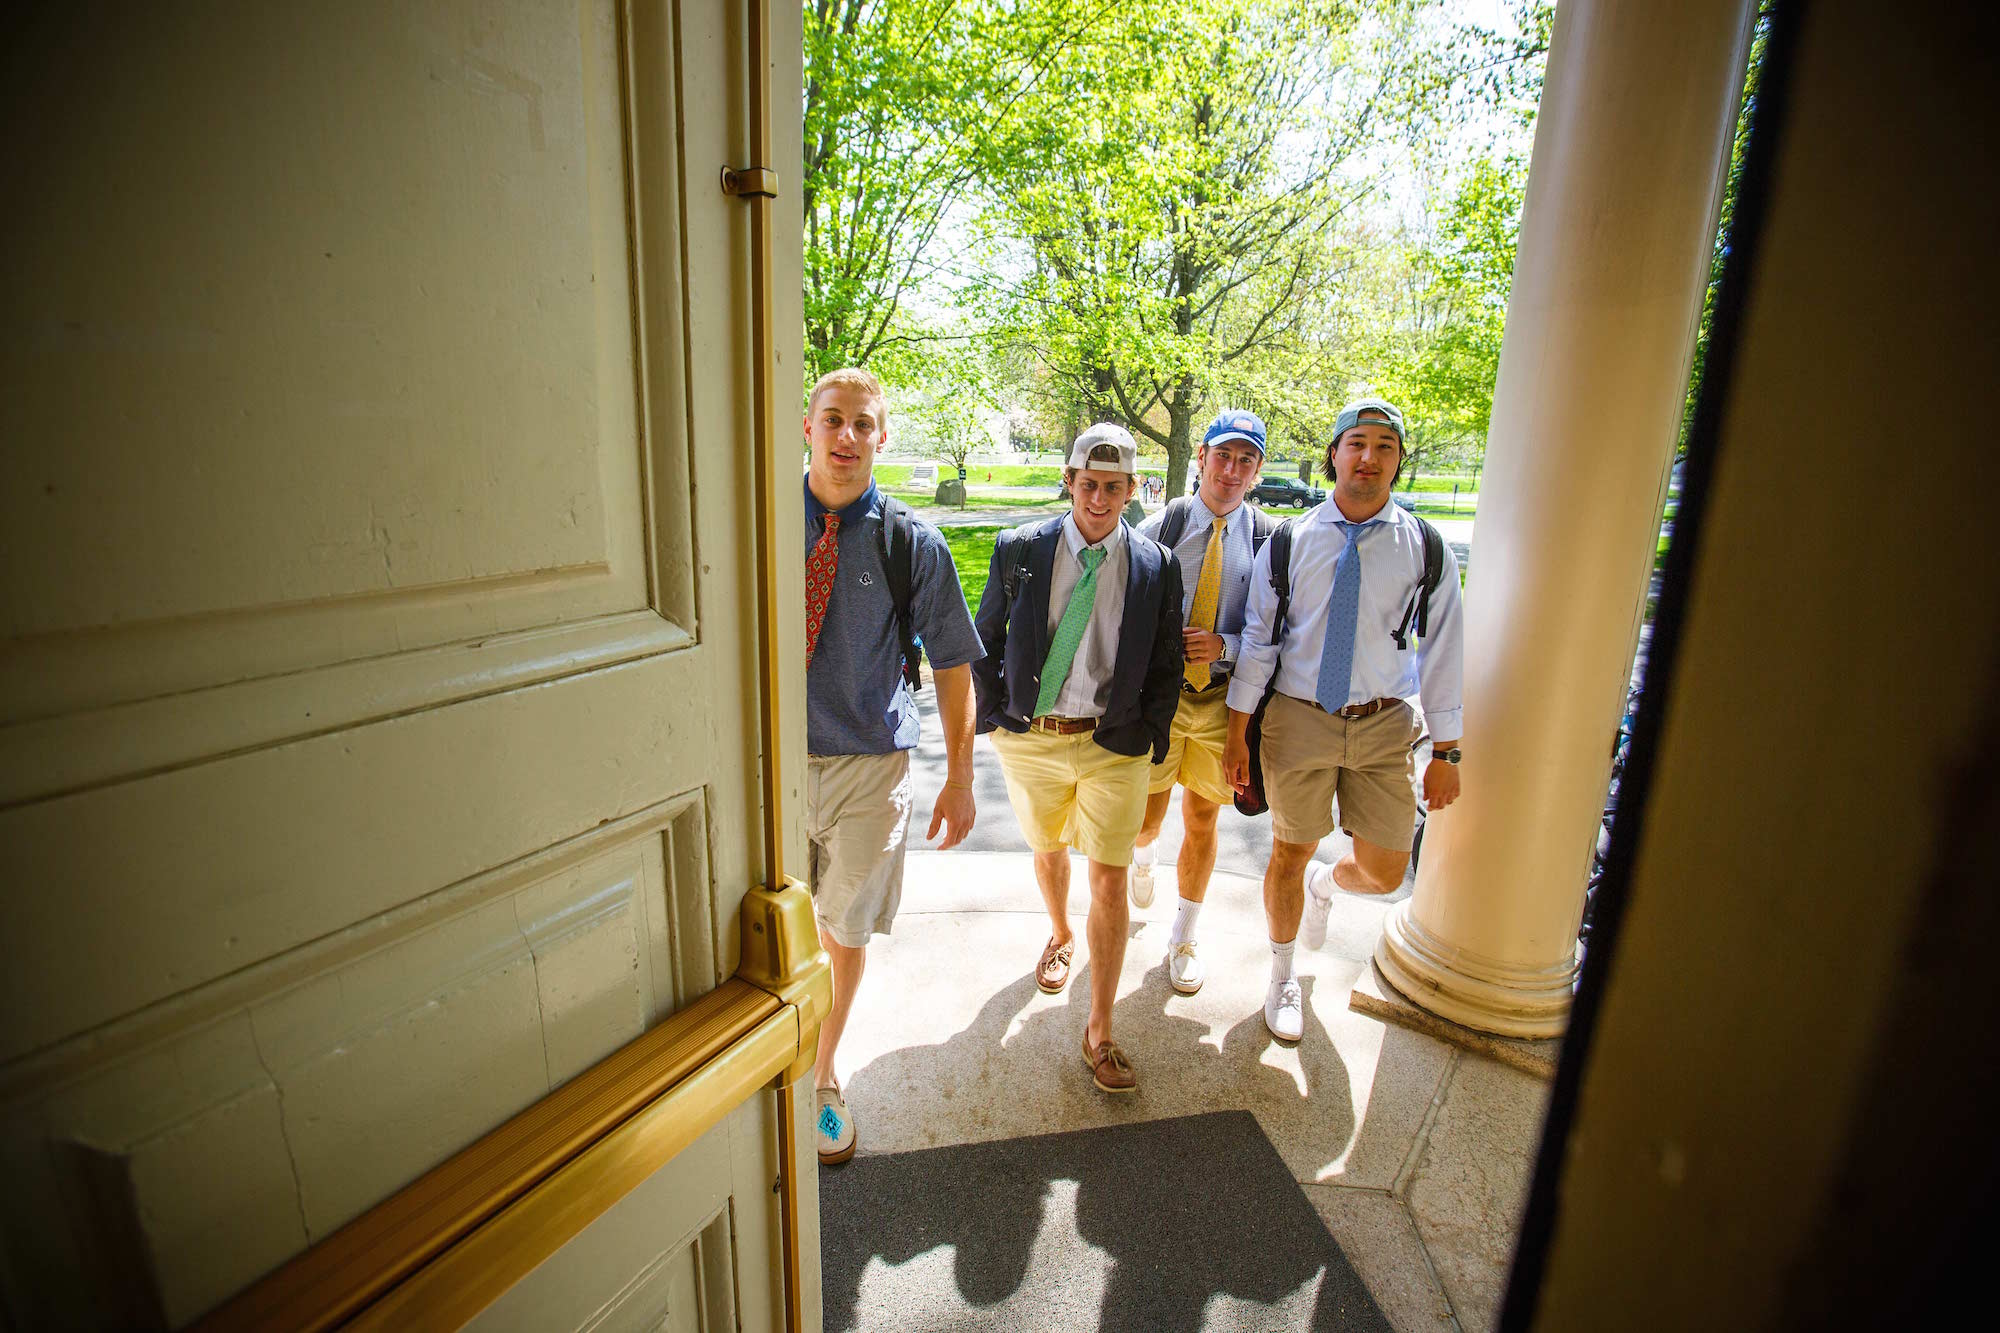 deerfield academy admission essay Essayedge provides professional essay editing and proofreading services for college and graduate school applications and academic papers after you send us your essay, we'll return it to you with feedback in as little as 24 hours so get ready for that acceptance letter, because it's on its way.